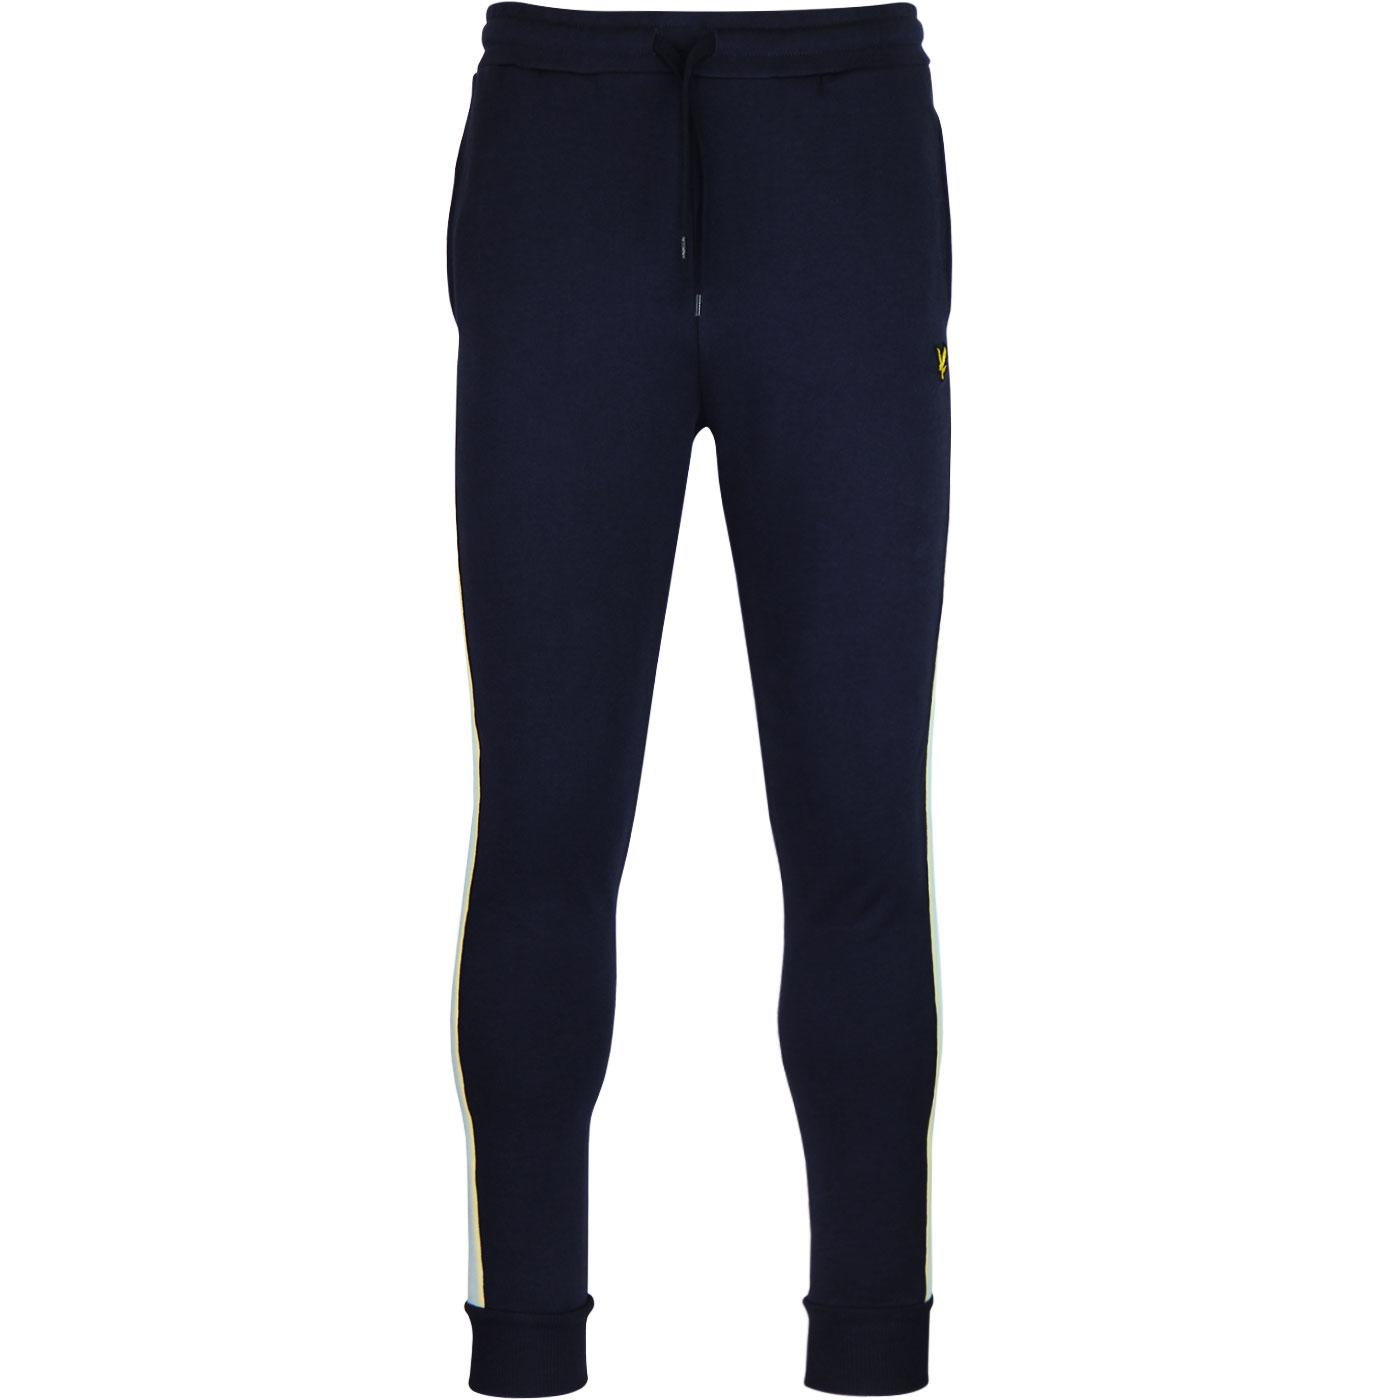 LYLE & SCOTT Retro 70s Side Stripe Sweatpants NAVY